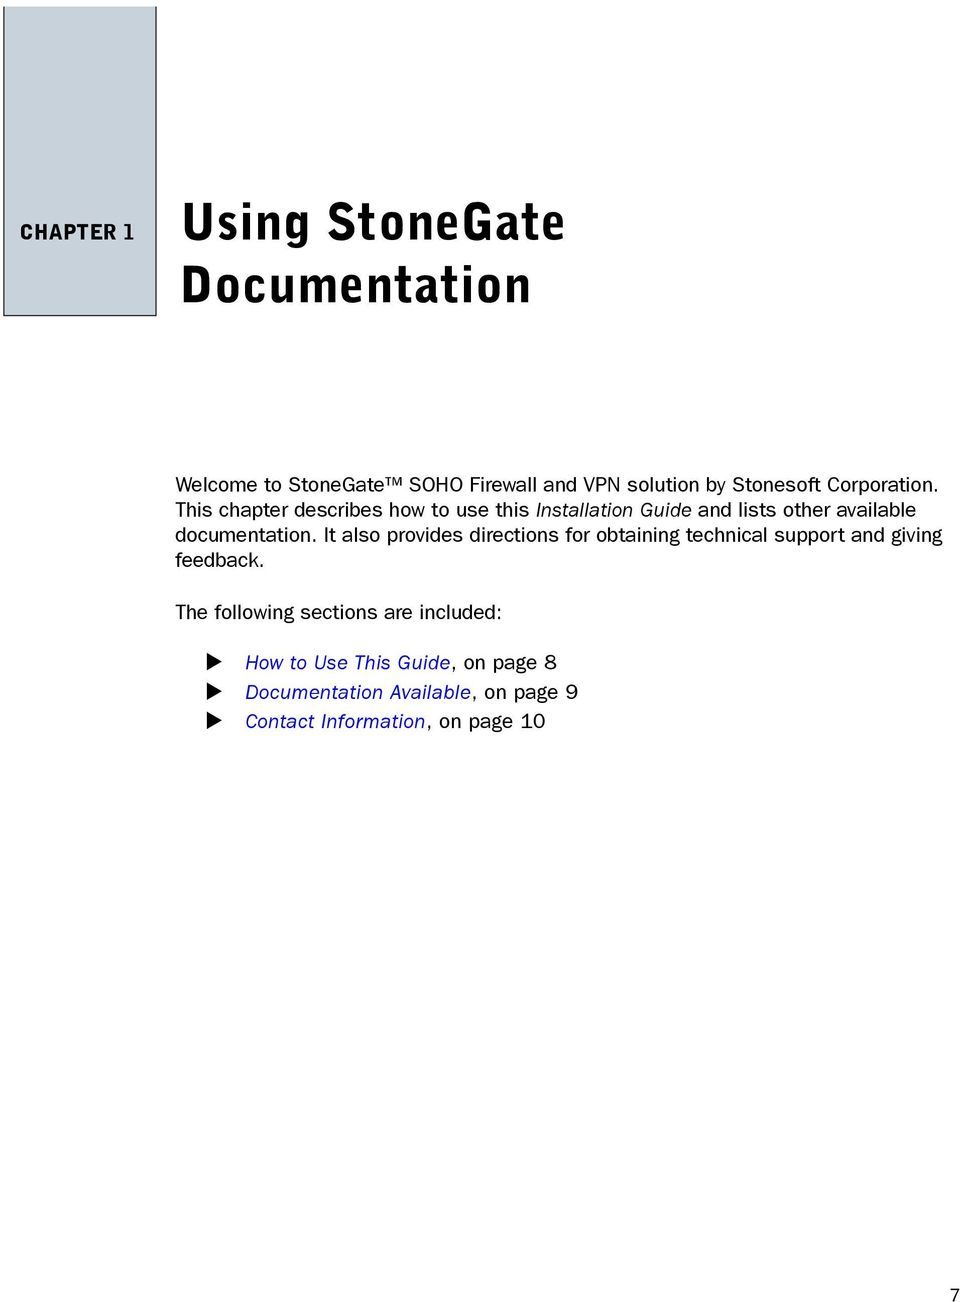 This chapter describes how to use this Installation Guide and lists other available documentation.